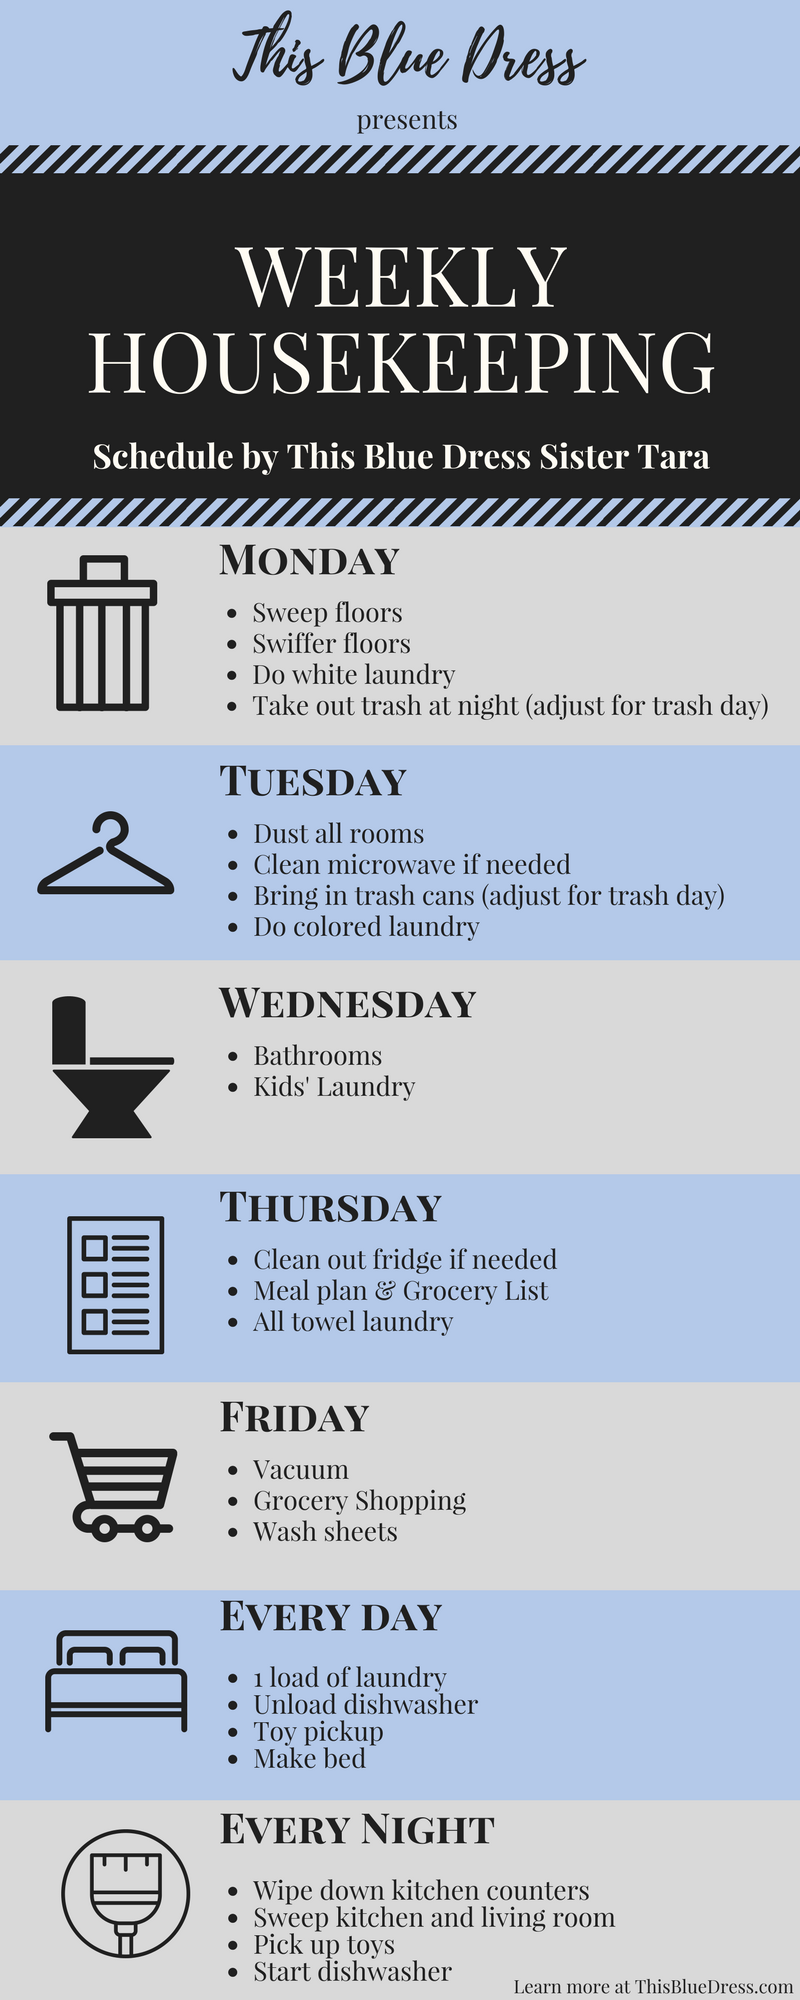 Weekly Housekeeping Schedule Infographic